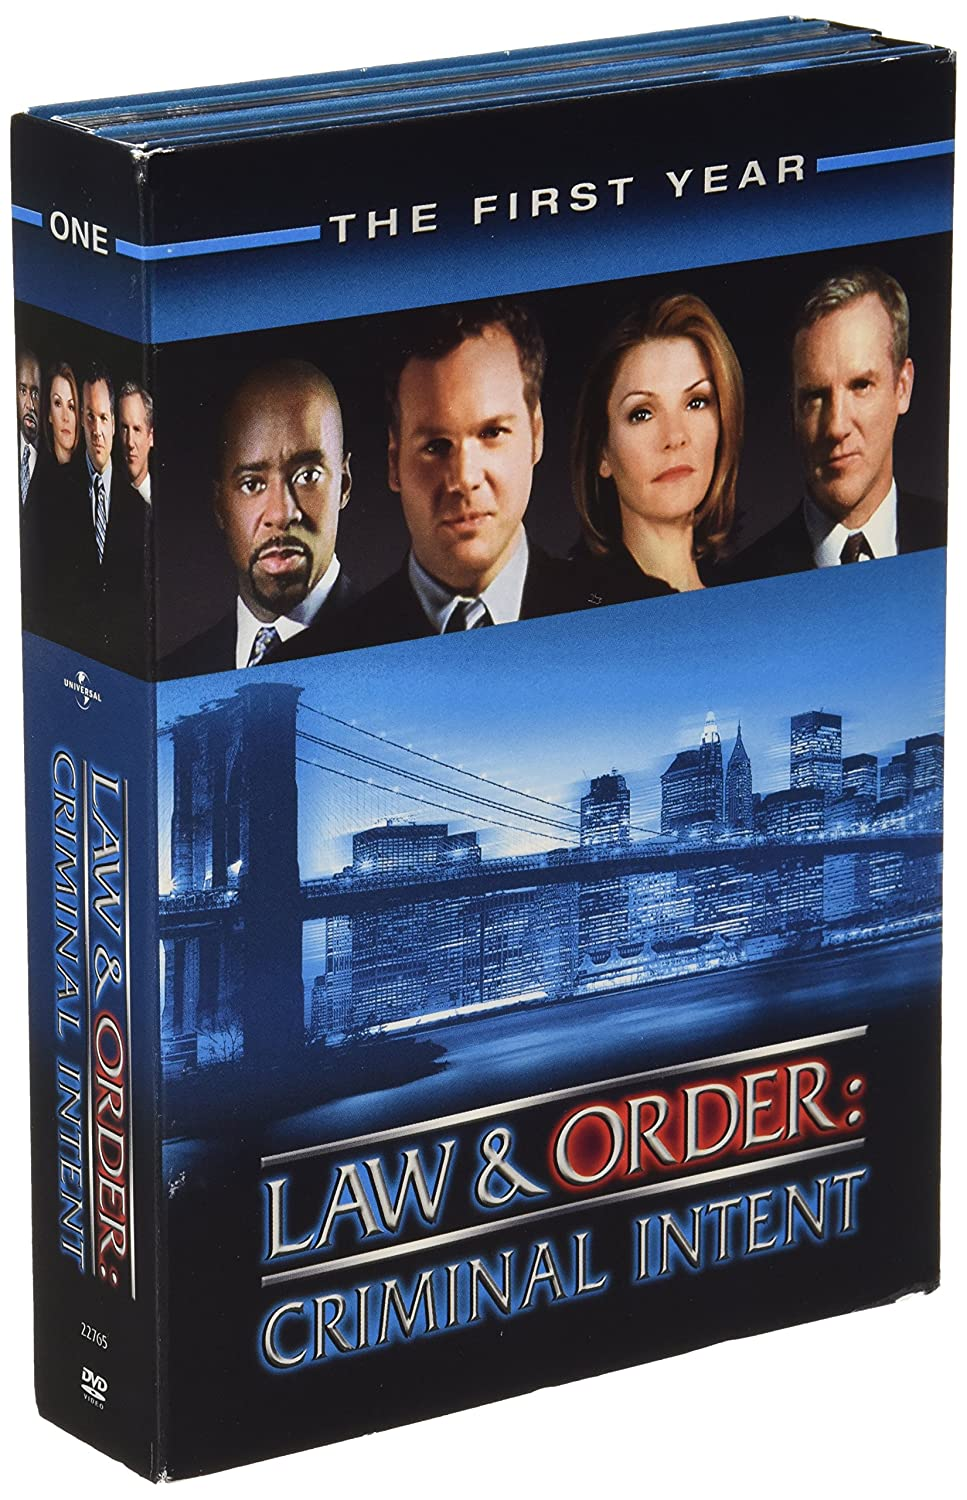 Law Order Criminal Intent Ranking TOP19 - The First Year Bombing new work